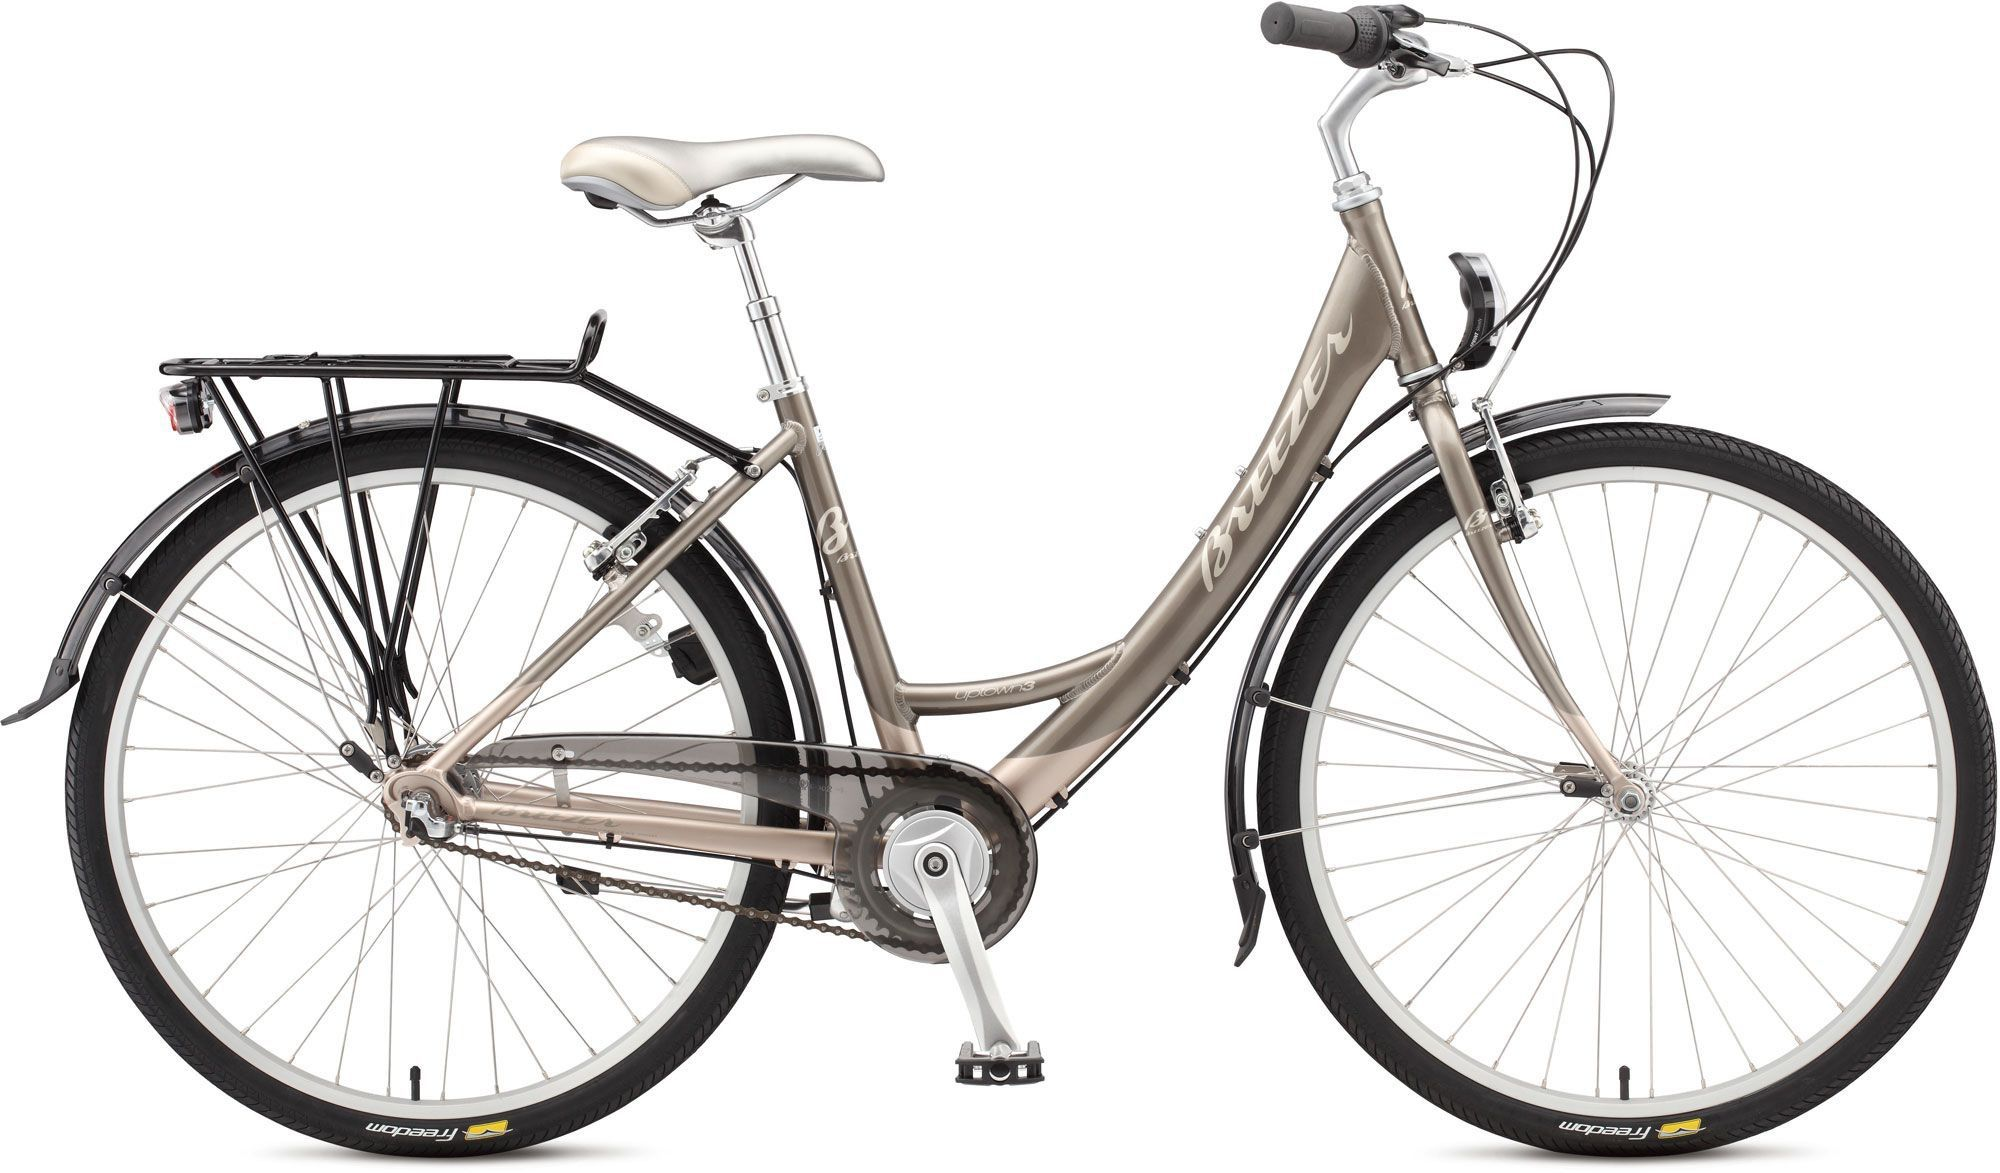 Breezer Uptown 3 | Cycling Chic | Pinterest | Cycle chic, Menlo park ...